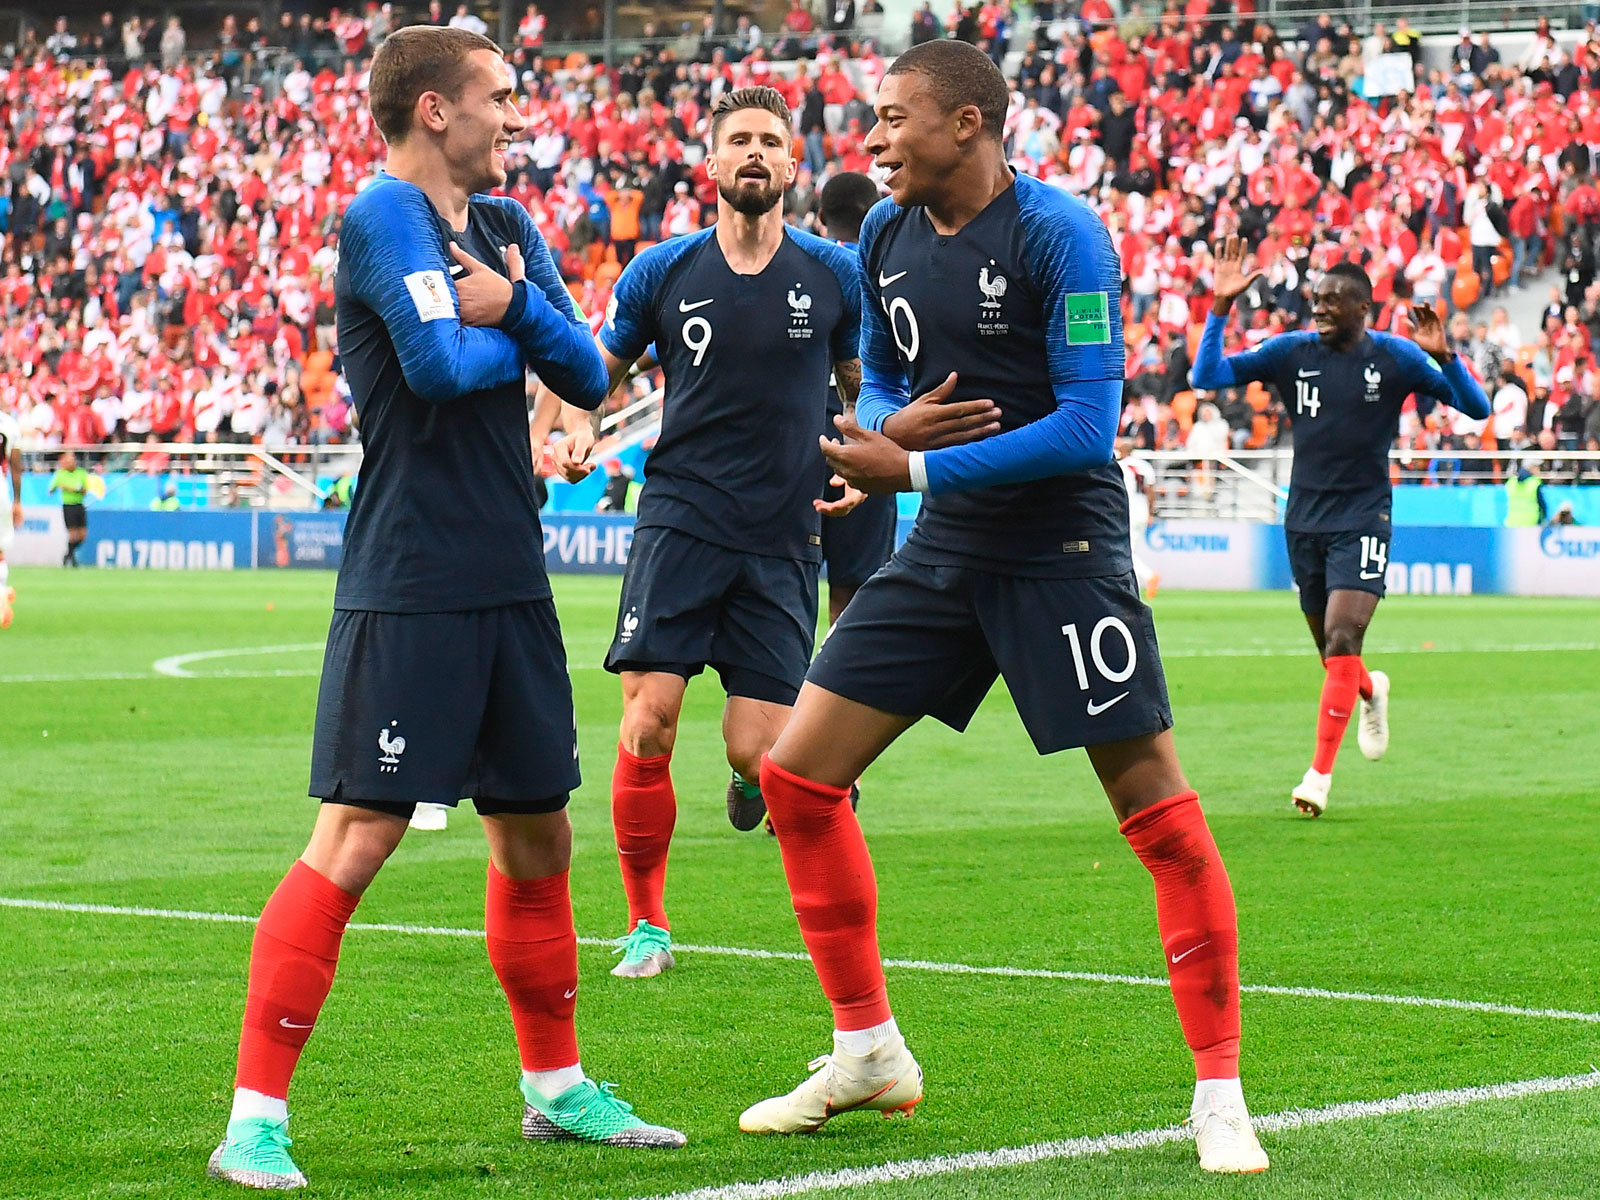 France boasts a wealth of attacking talent at the World Cup